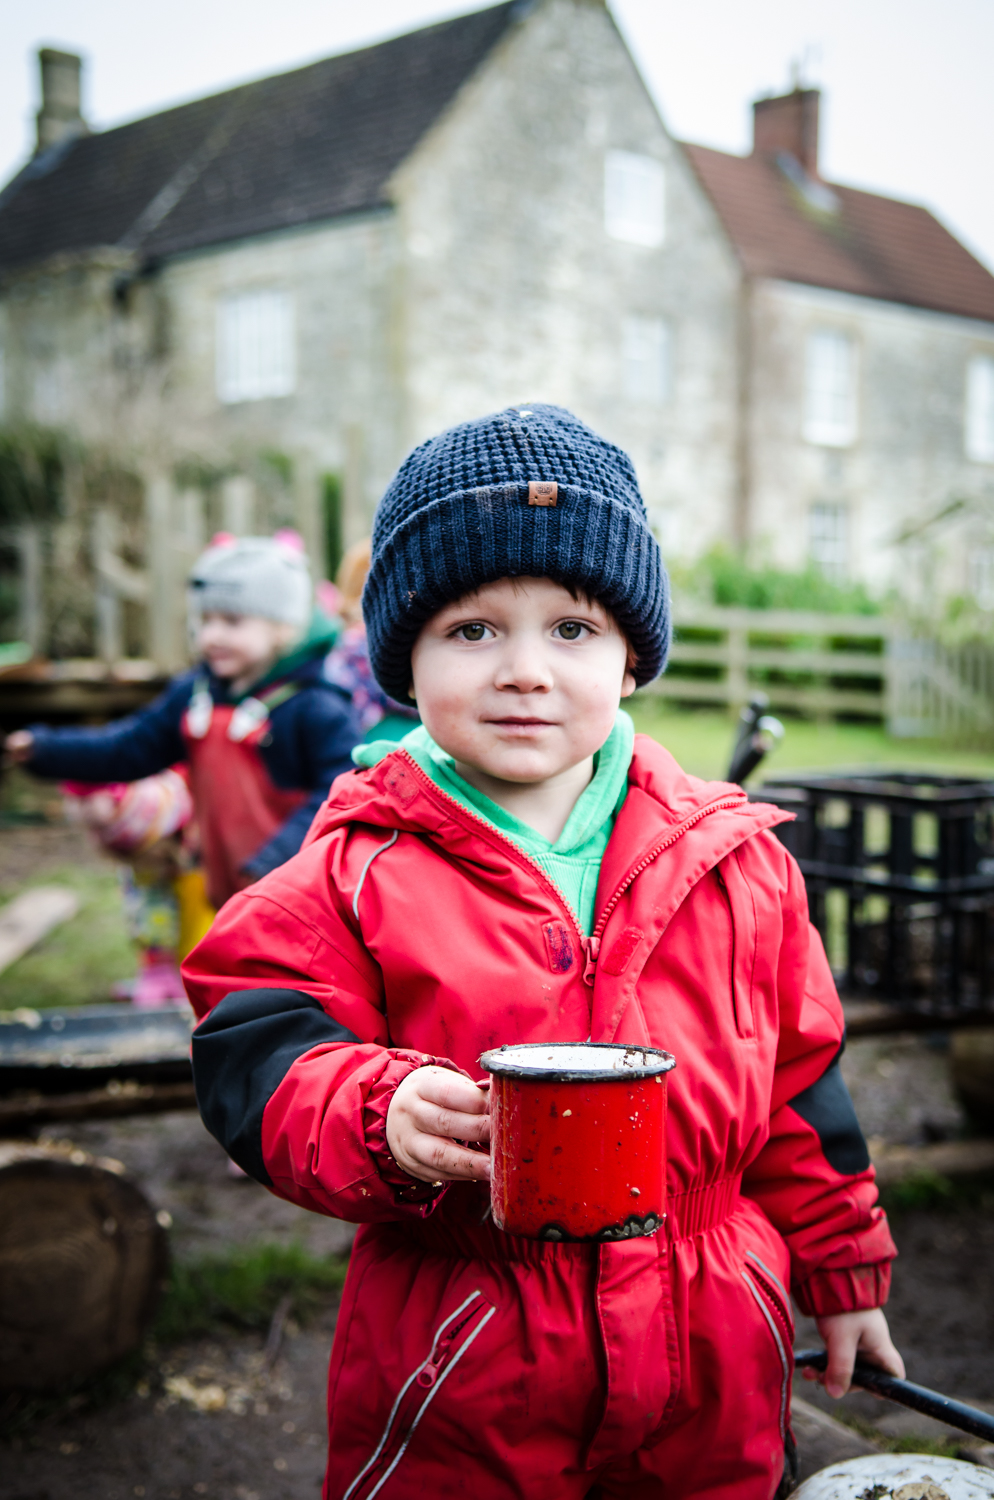 """Would you like a cup of tea?""  Roleplay offers children the chance to explore and ""play-out"" social conventions and conversations overhead from adults."